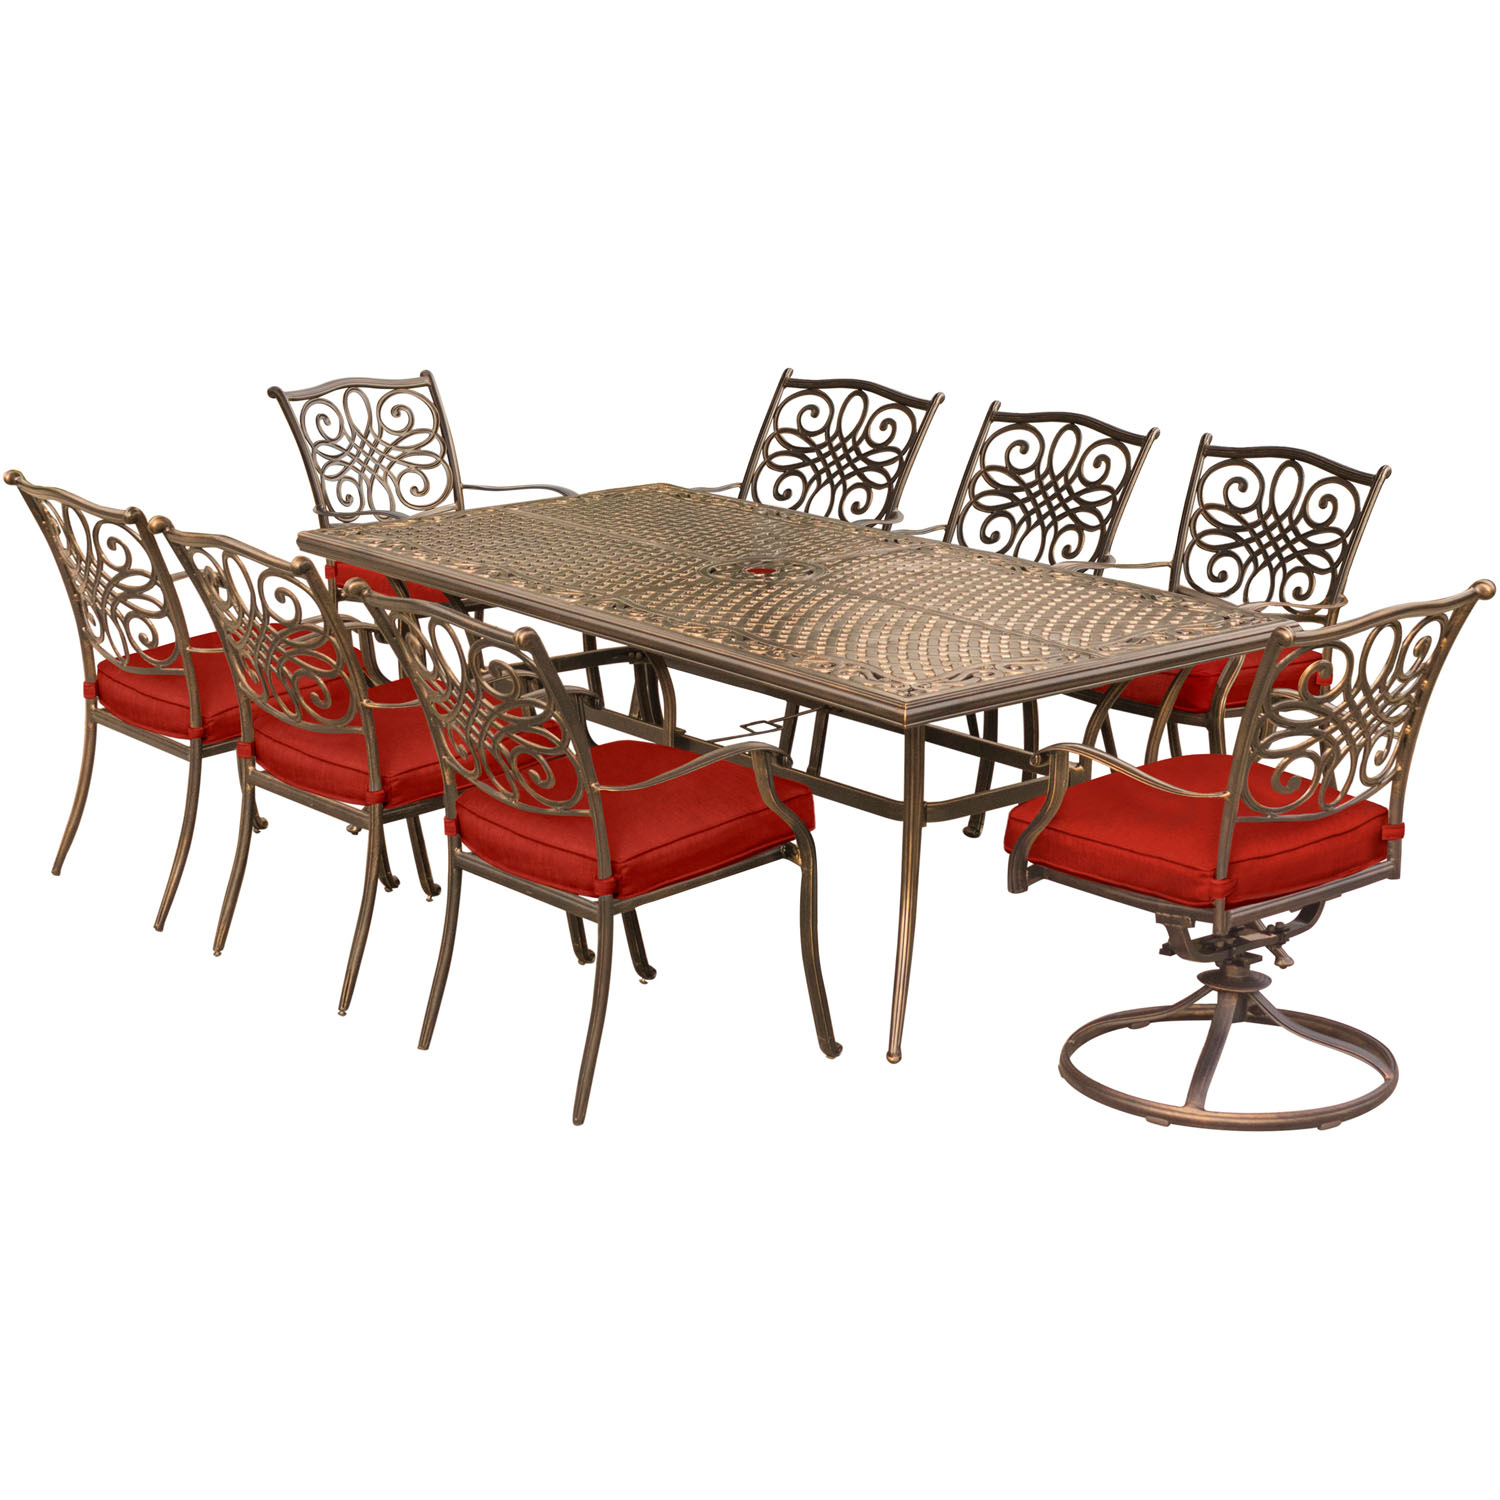 Hanover Traditions 9-Piece Outdoor Dining Set with Cast-Top Table, 2 Swivel Rockers and 6 Stationary Chairs